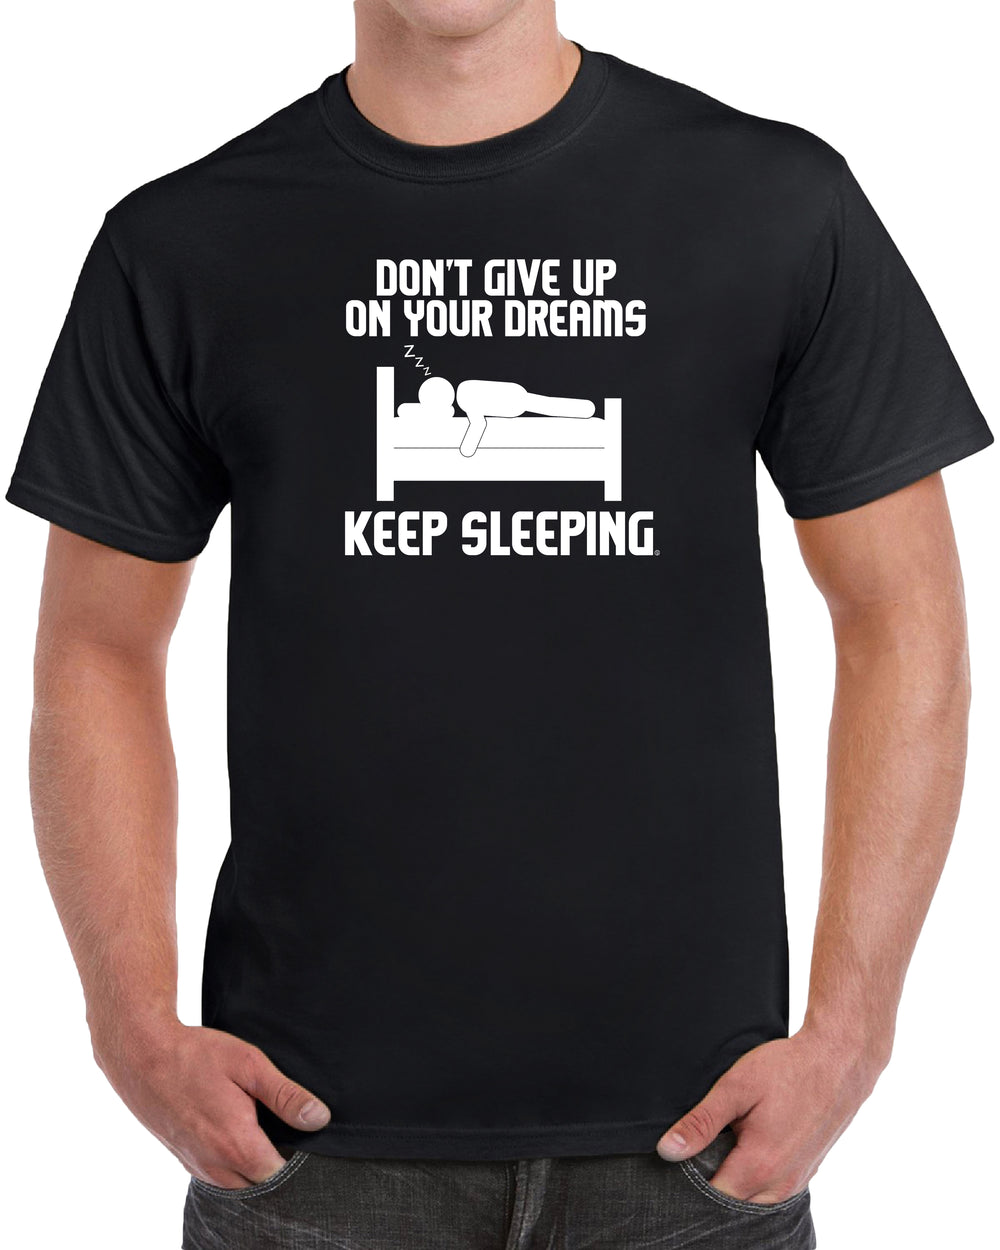 Don't Give Up On Your Dreams, Keep Sleeping - Solid Print